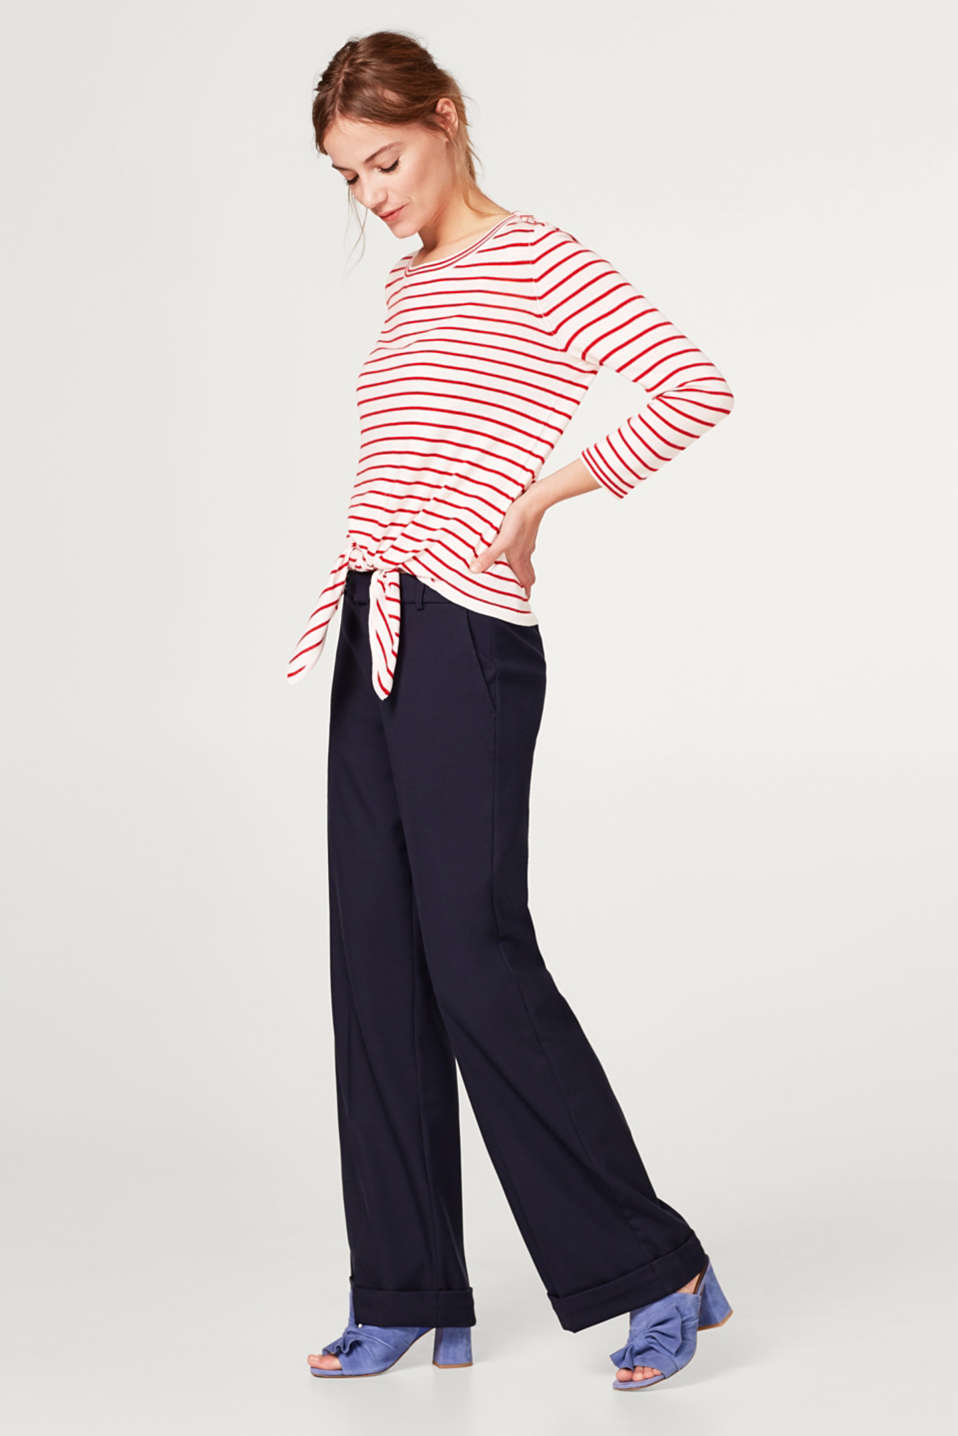 Striped jumper with a bow detail